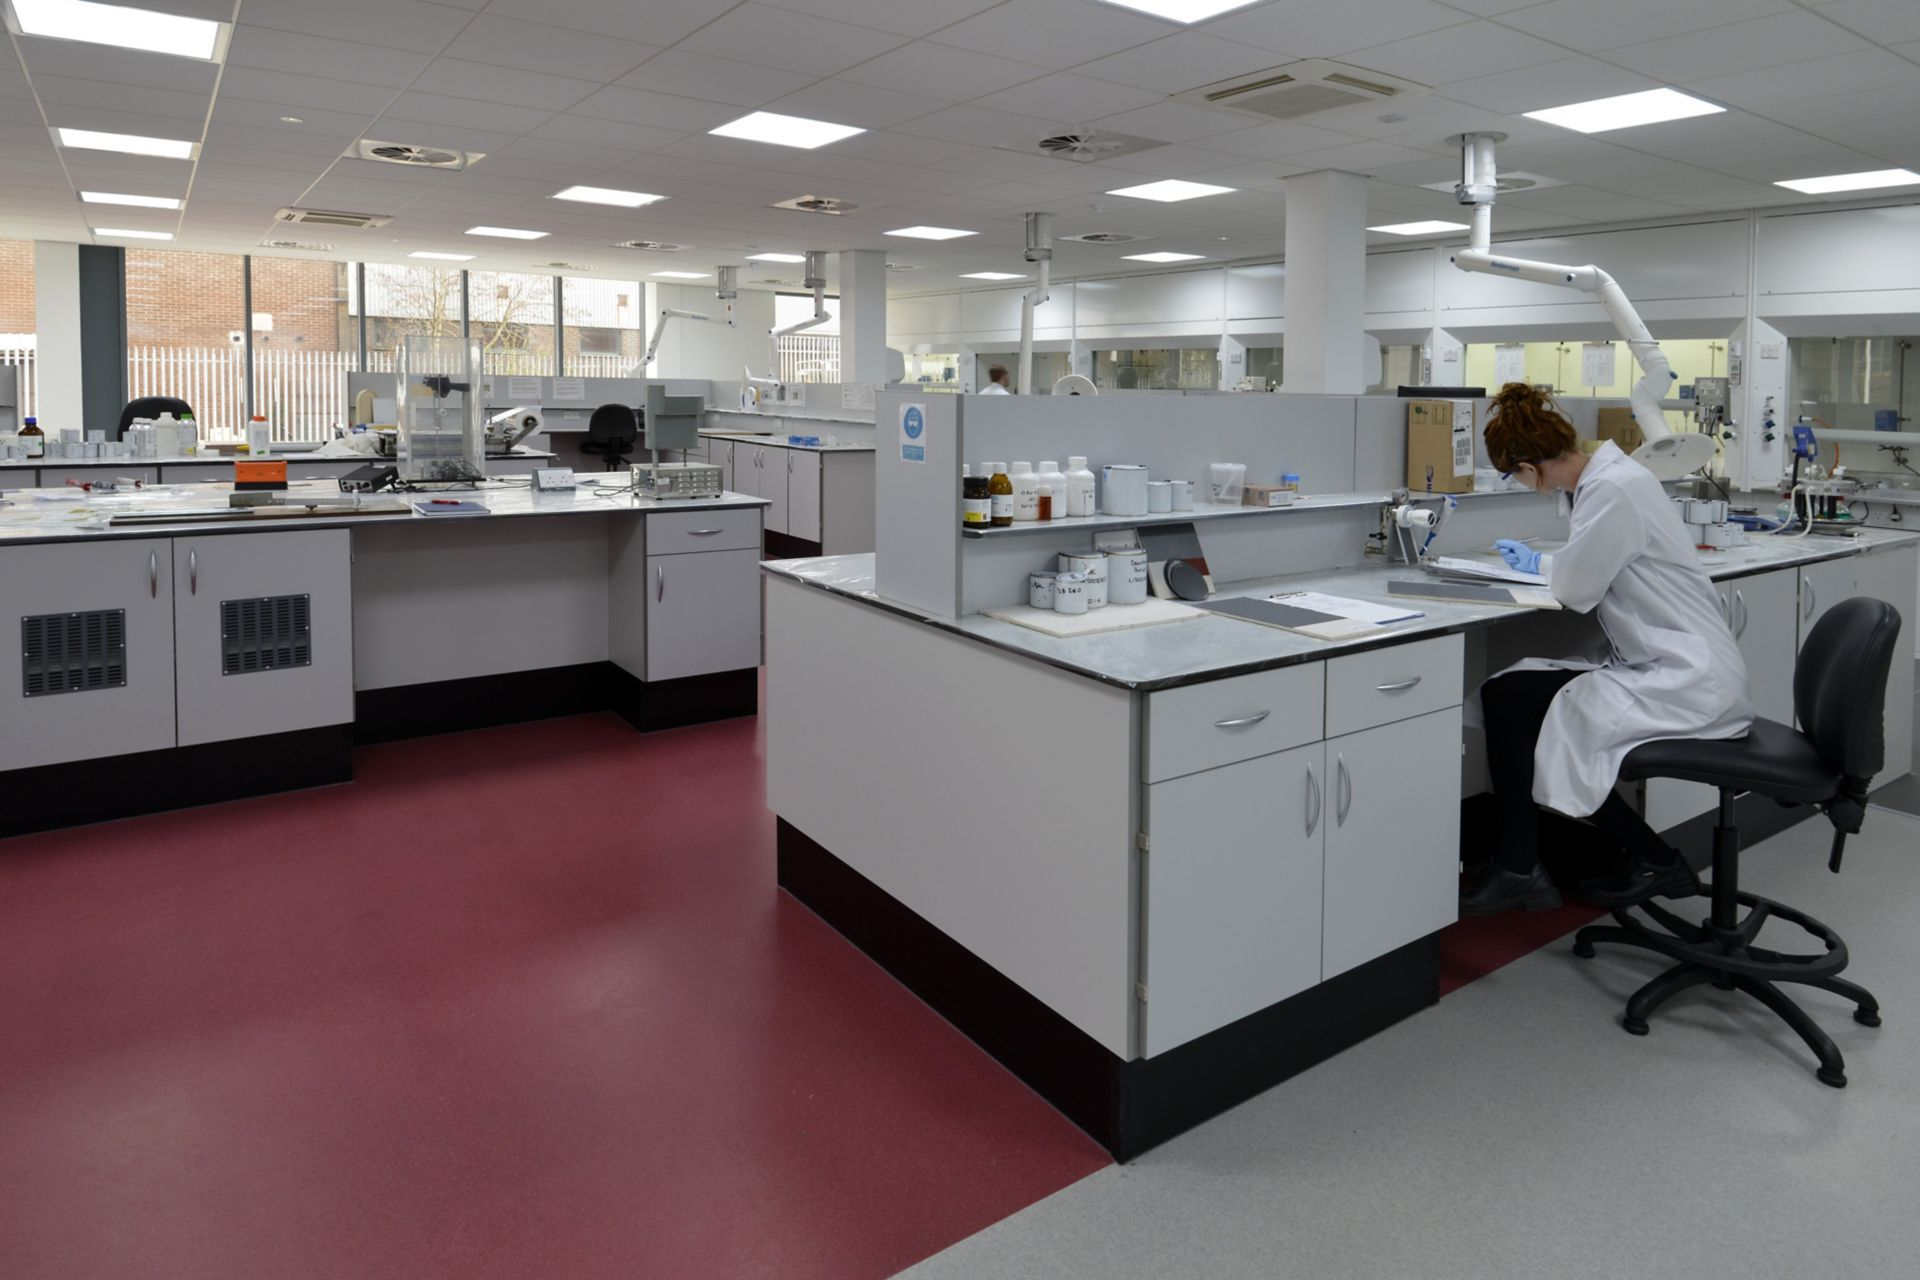 Clean red and white decorative laboratory interior floor with female research technician at work